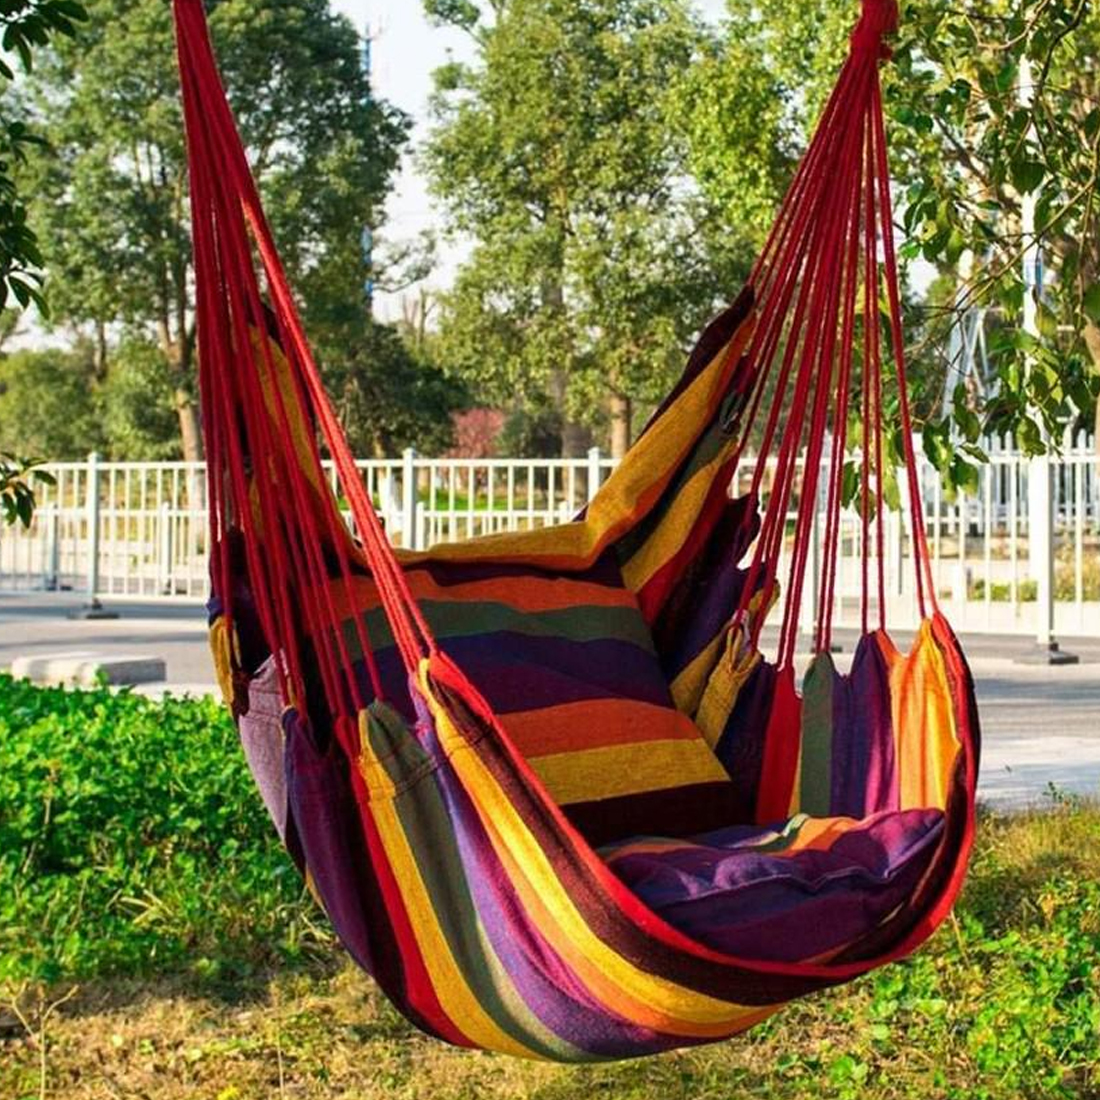 150kg Garden Hang Chair Swinging Indoor Outdoor Furniture Hammock Hanging Rope Chair Swing Chair Seat Portable Camping Seat